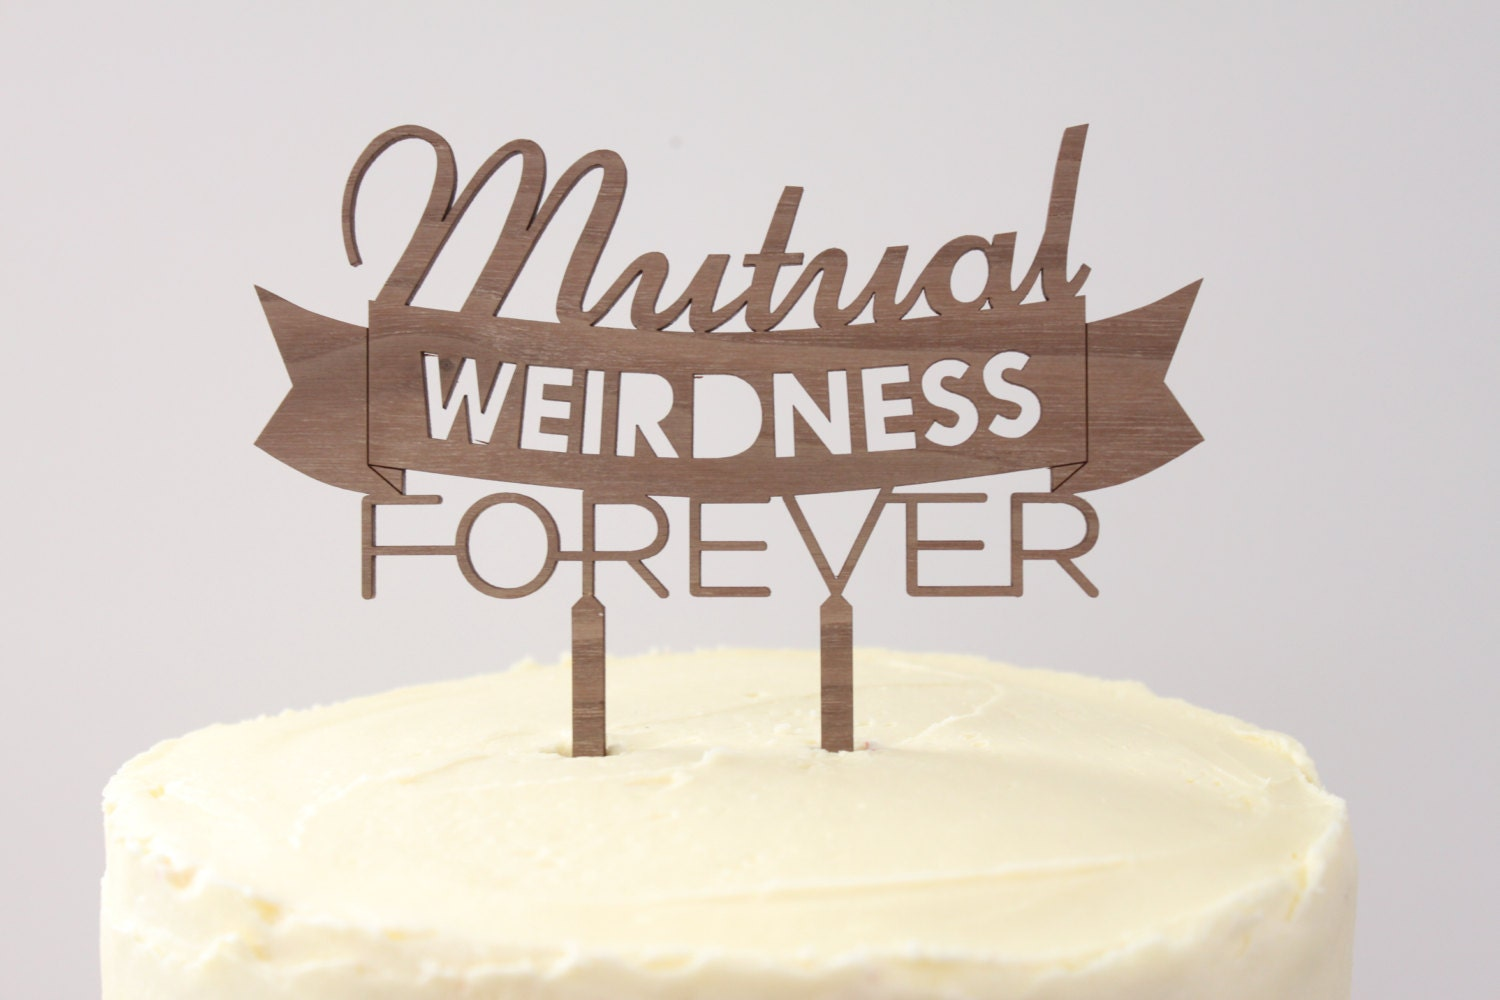 mutual weirdness forever timber wedding cake topper